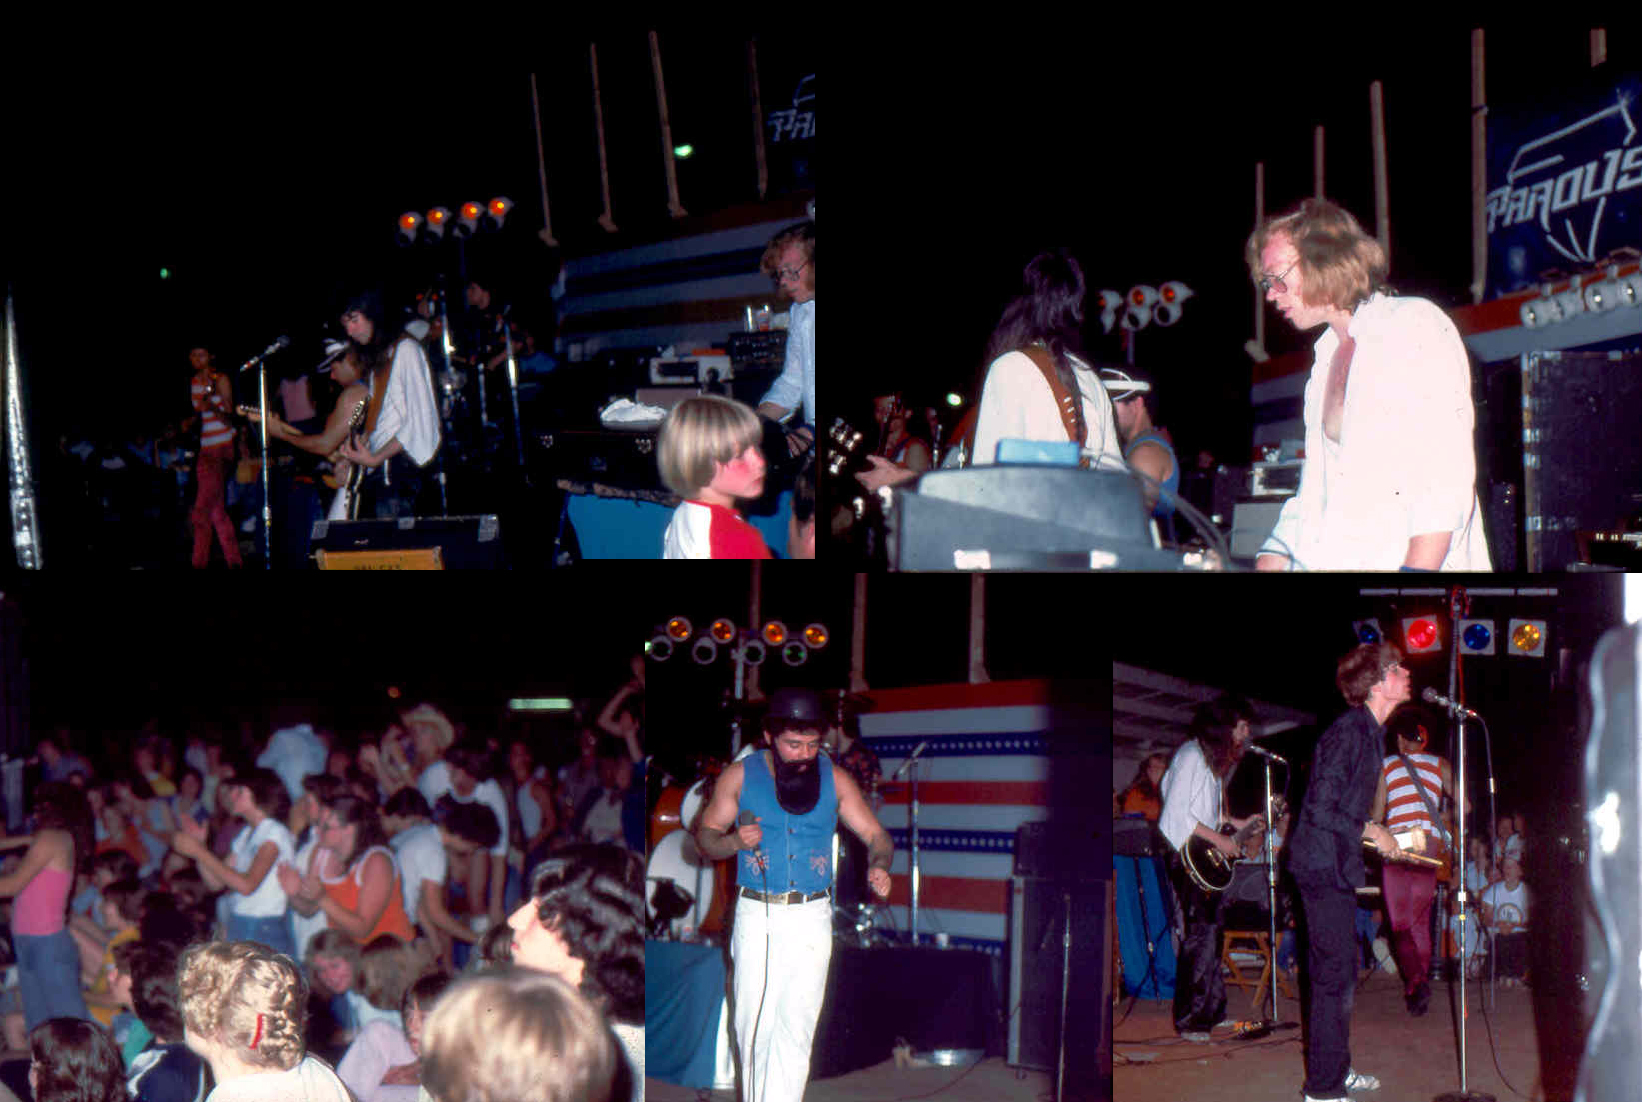 Parousia concert at Riverside Park - July 3, 1981